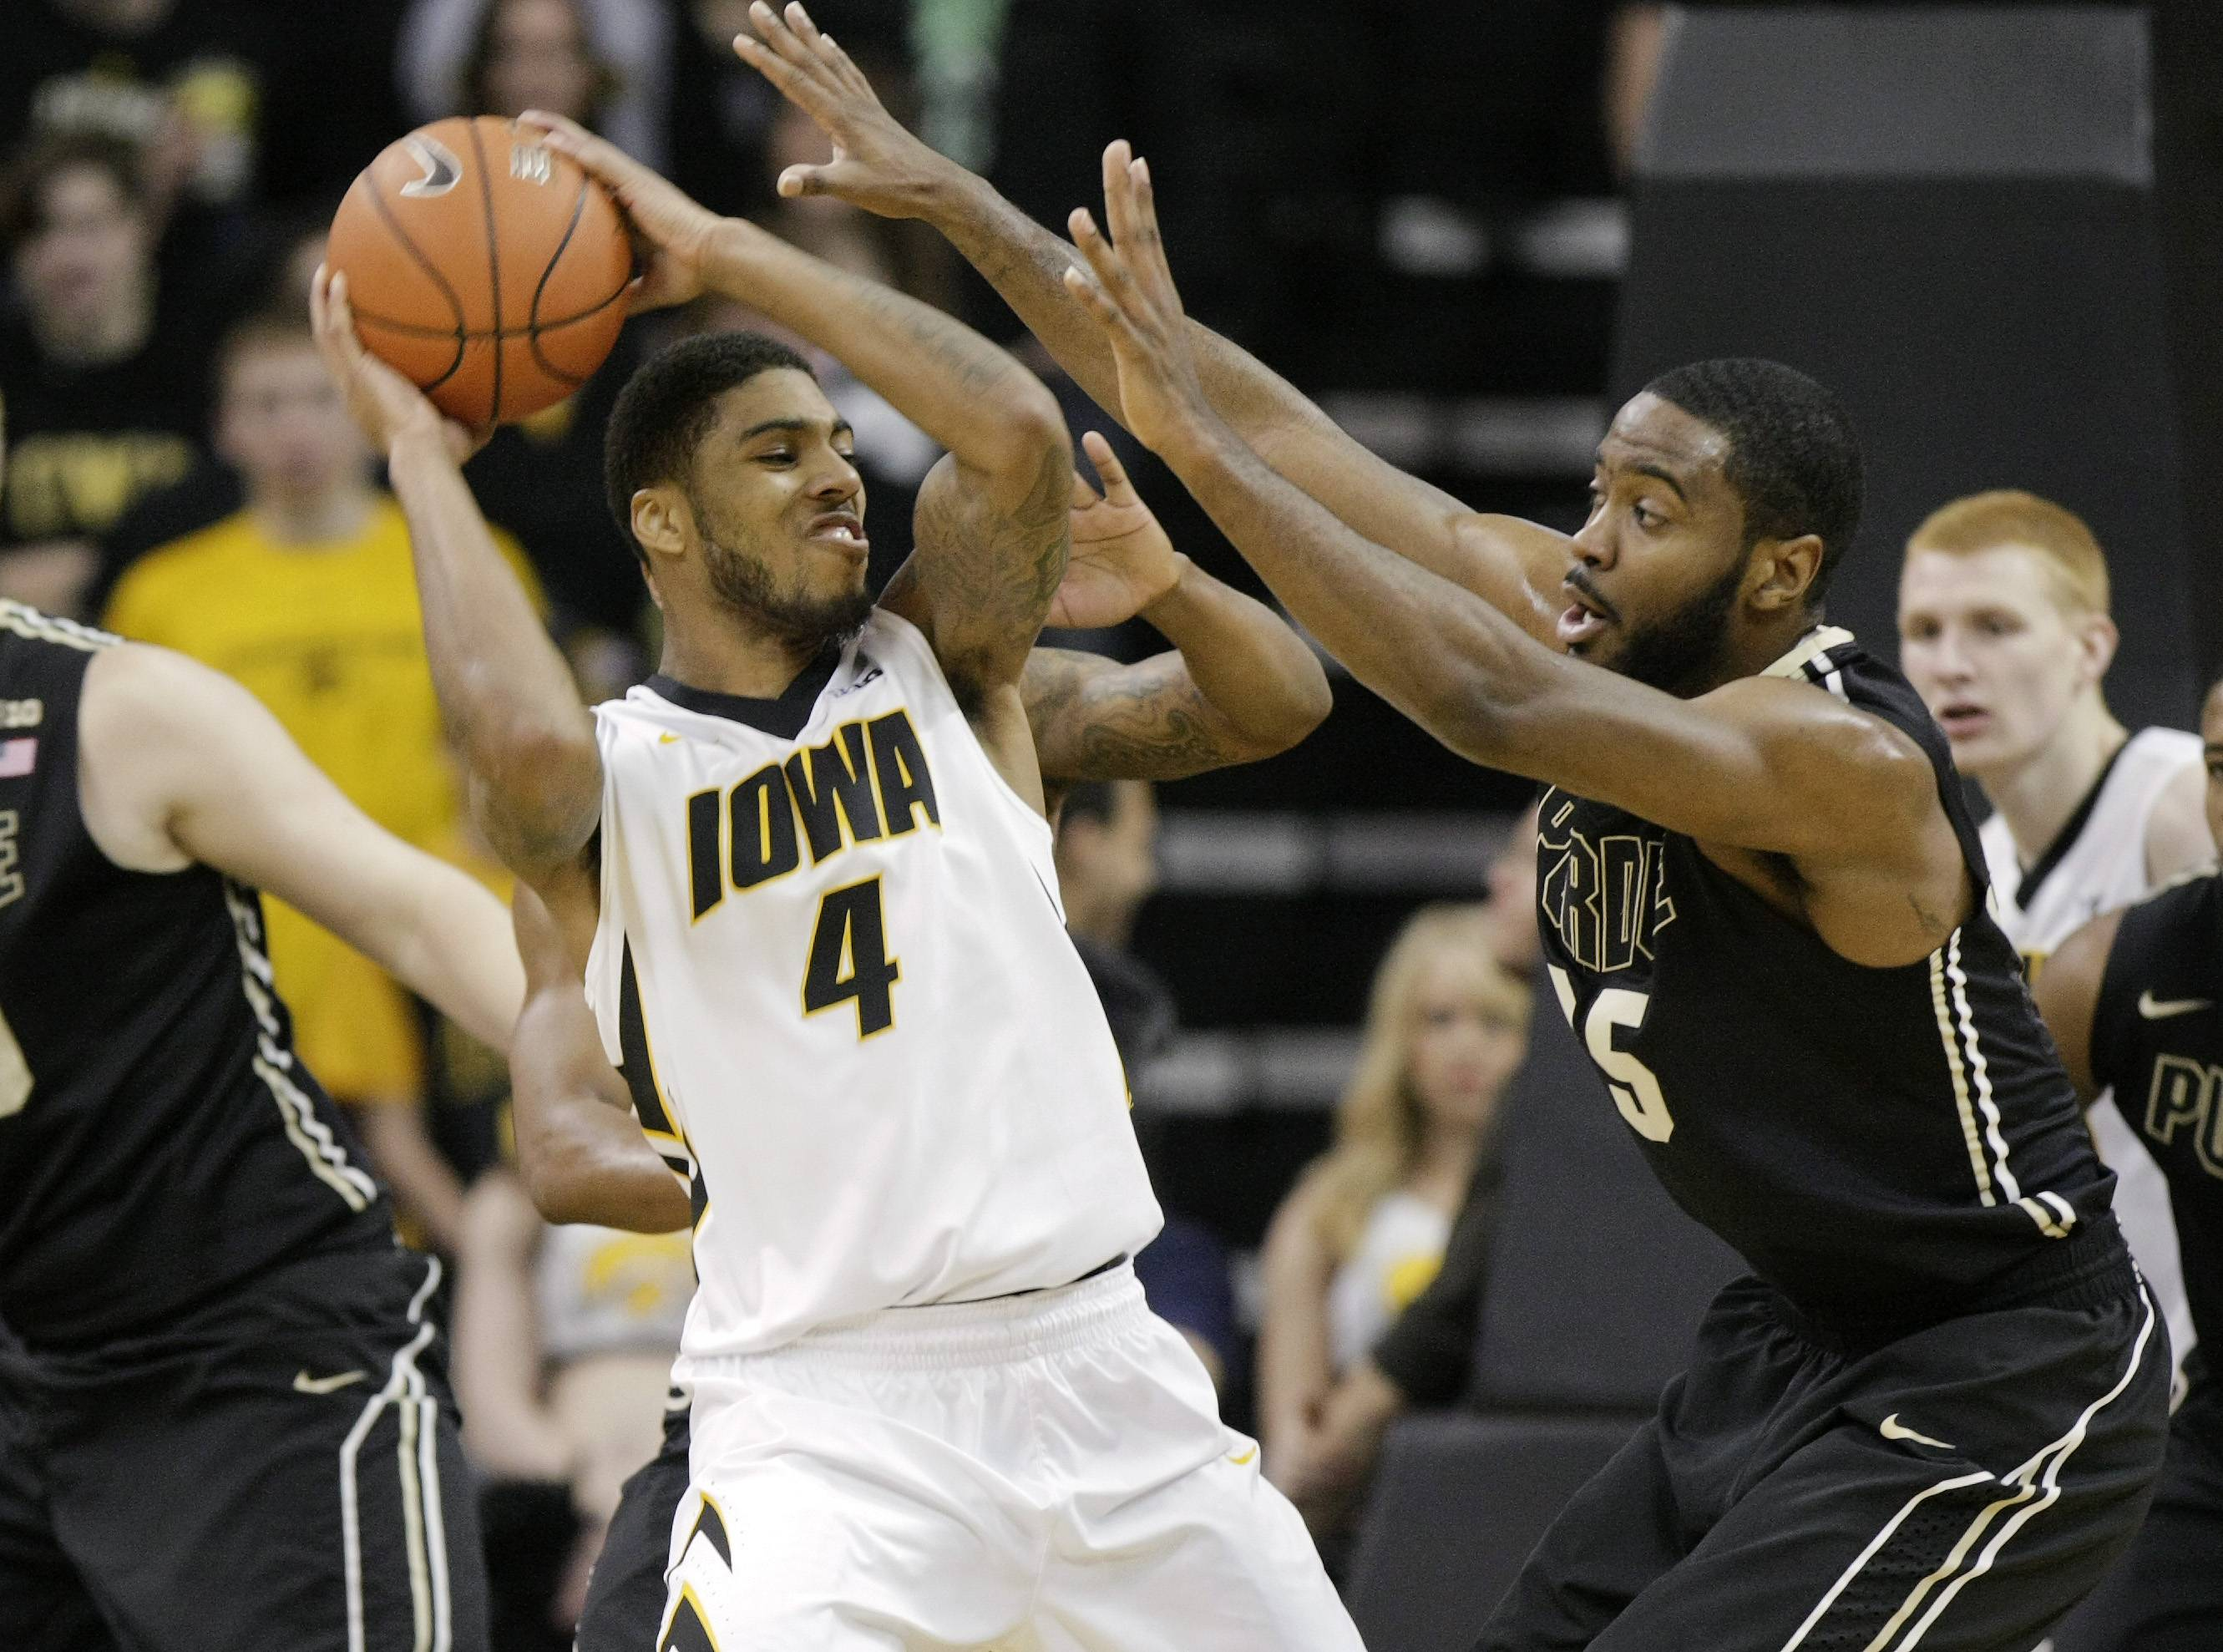 Iowa guard Roy Devyn Marble (4) is double-teamed by Purdue guard Rapheal Davis, right, and guard Ronnie Johnson, behind Marble, during the first half of a Big Ten NCAA college basketball game at Carver-Hawkeye Arena on Sunday, March 2, 2014, in Iowa City, Iowa.